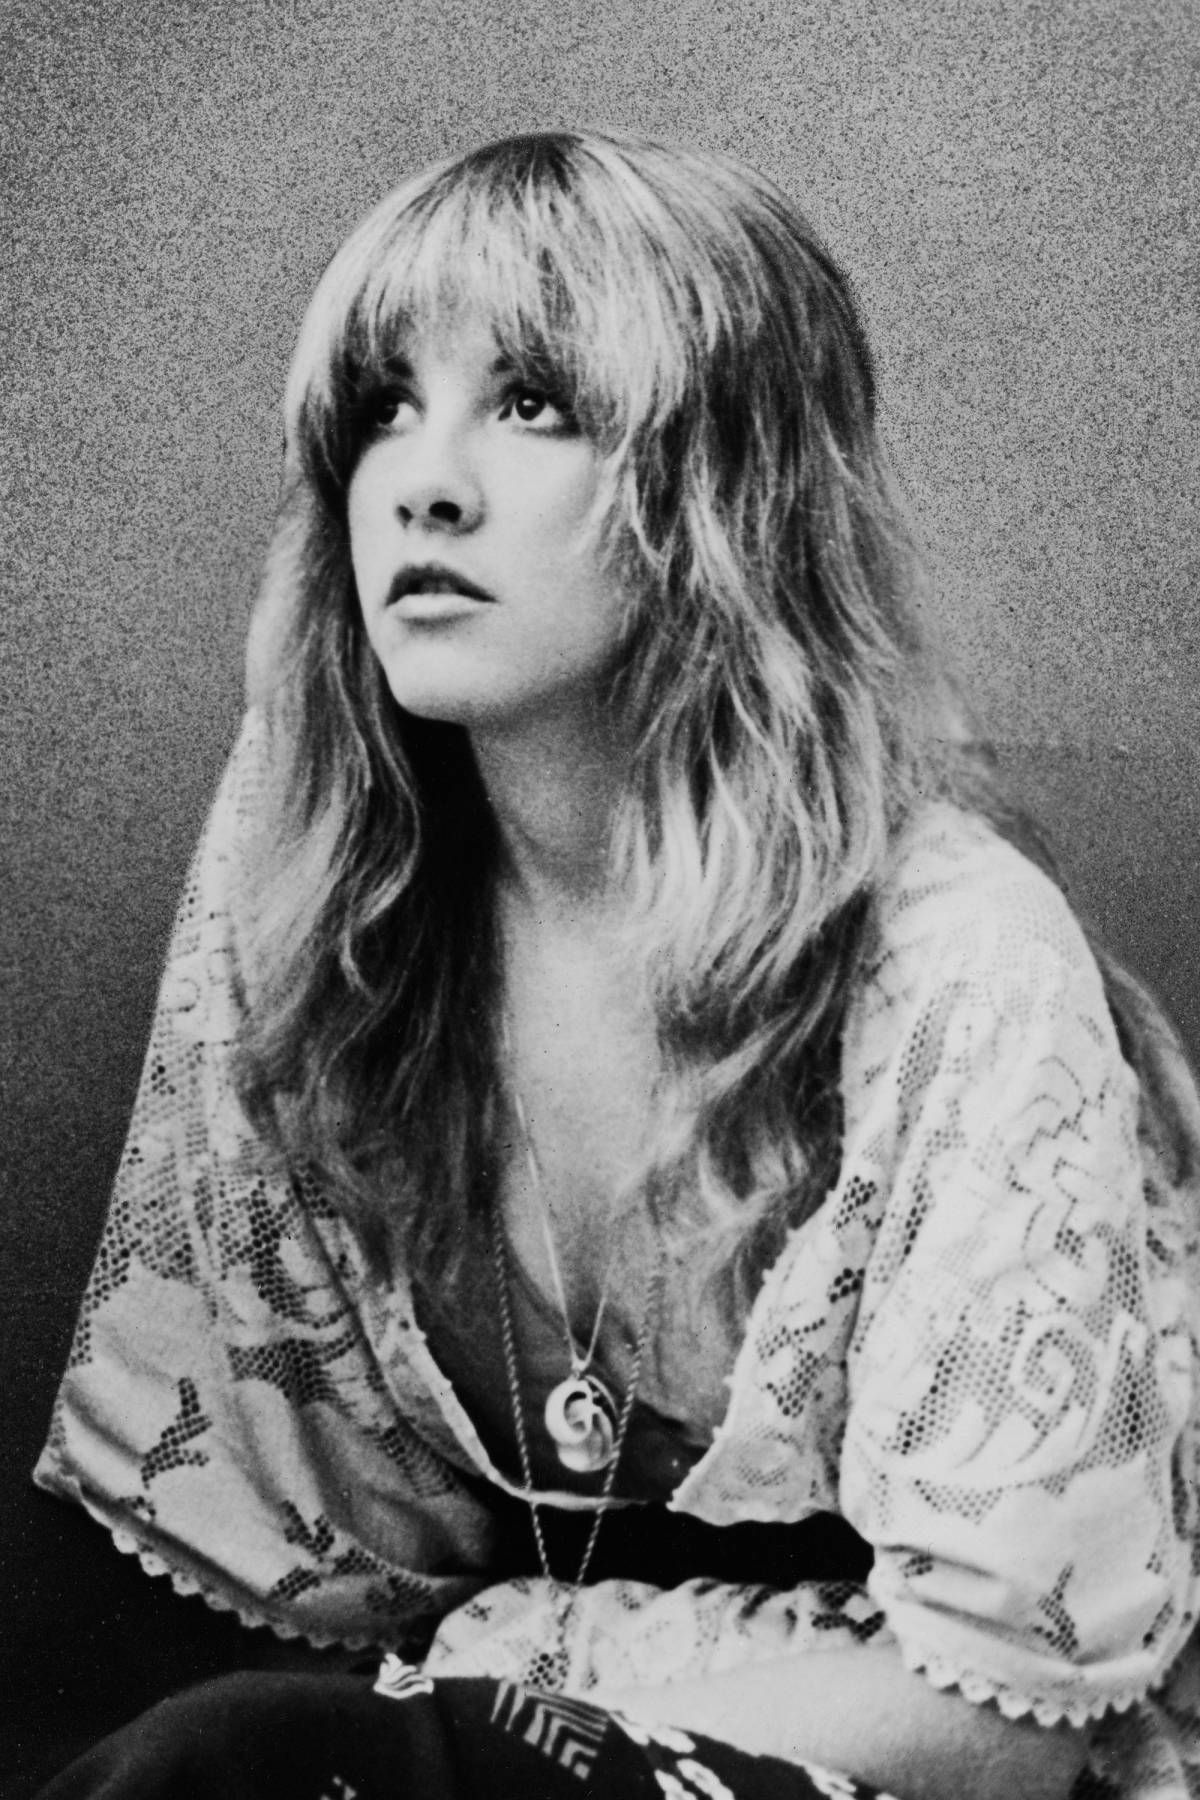 Stevie Nicks in 1977